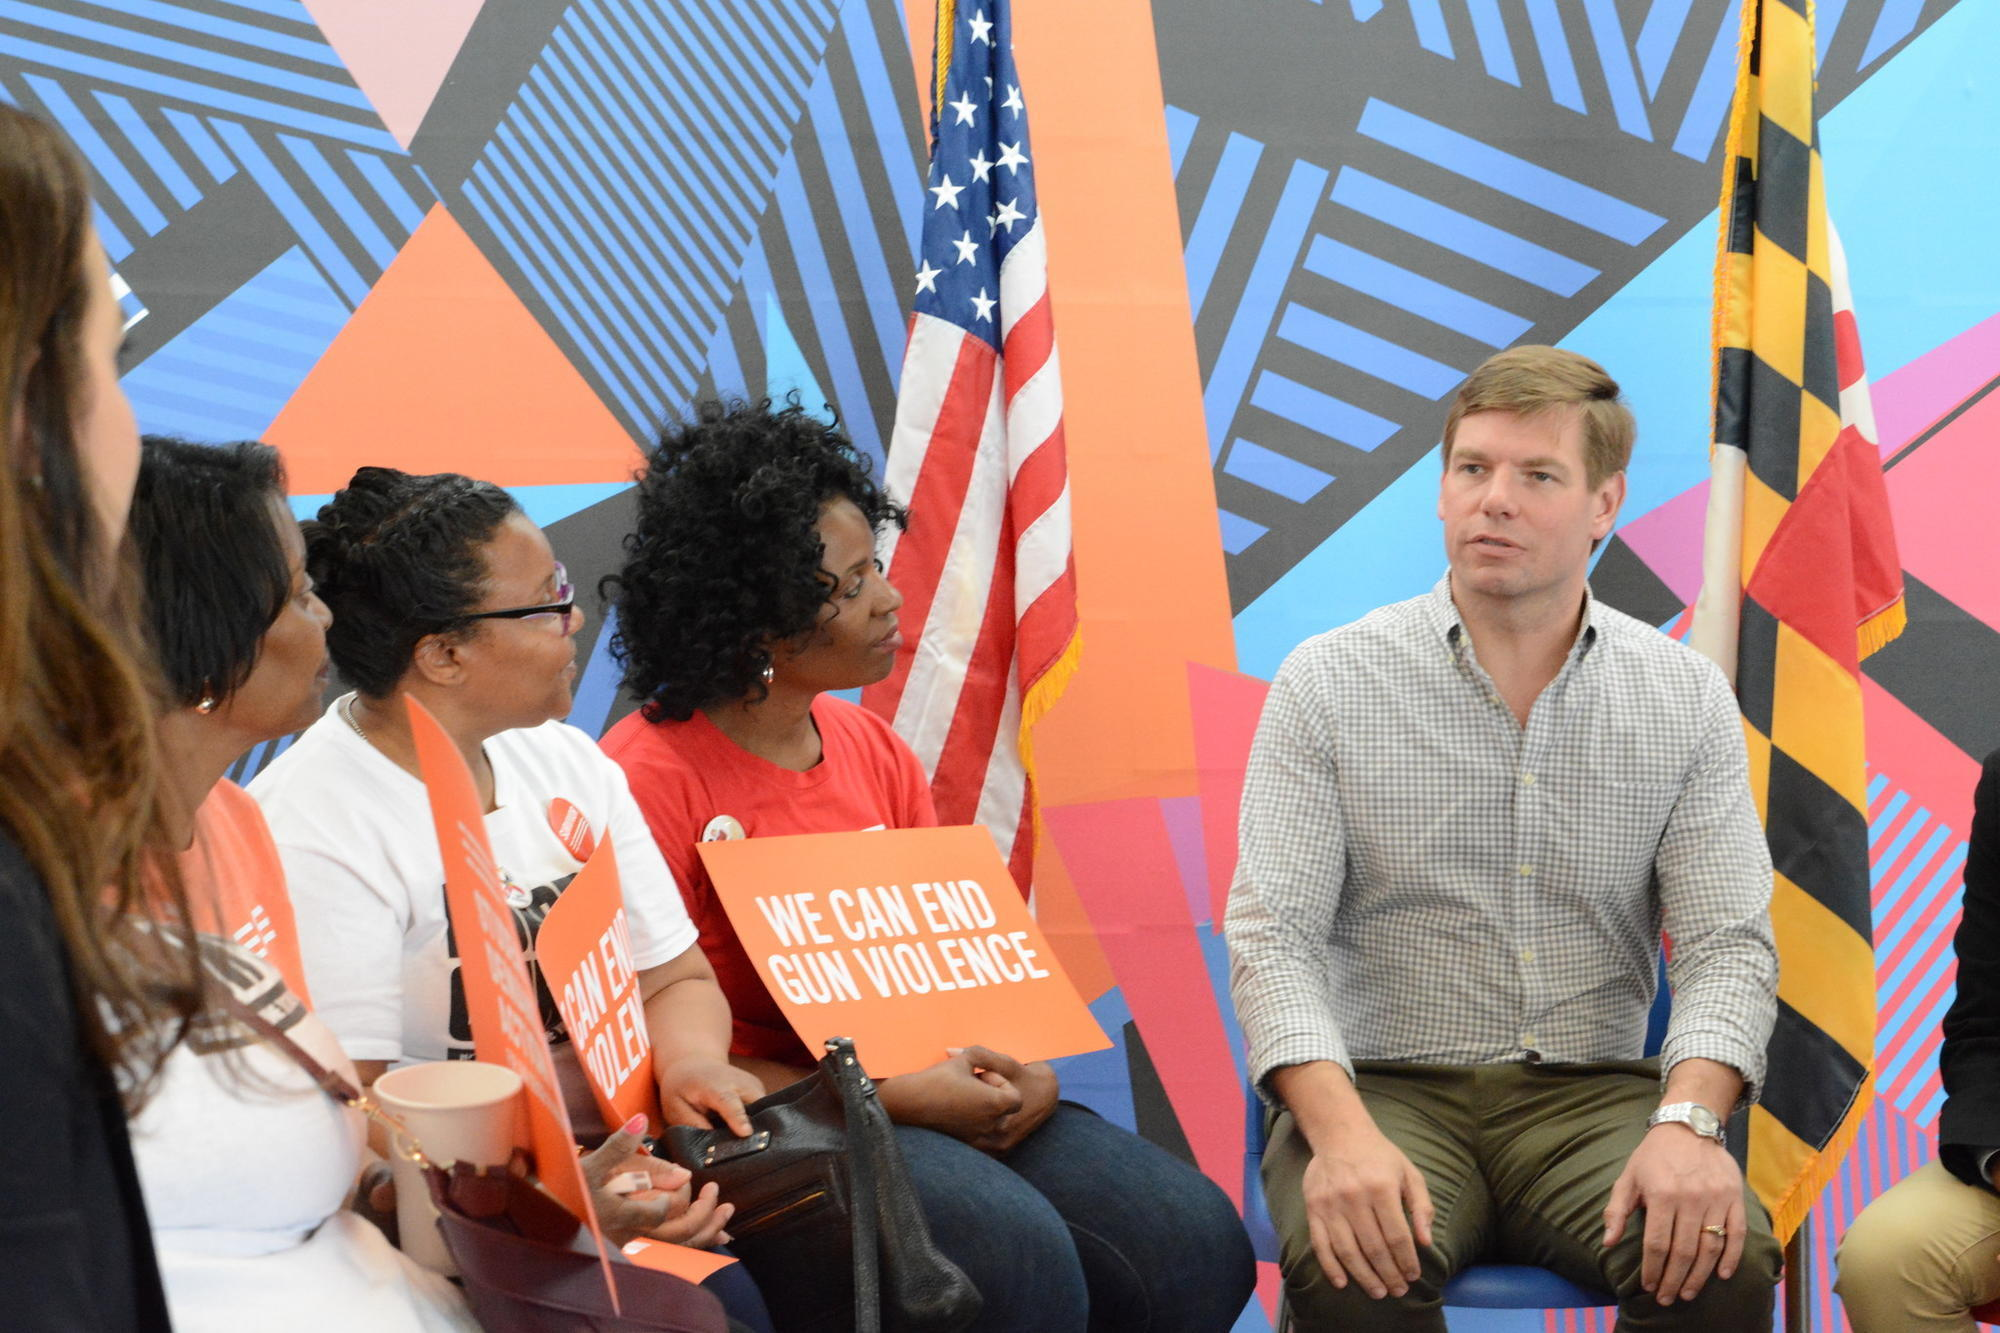 baltimoresun.com - Hallie Miller - Democratic presidential candidate Rep. Eric Swalwell visits Baltimore to highlight campaign's focus on gun violence